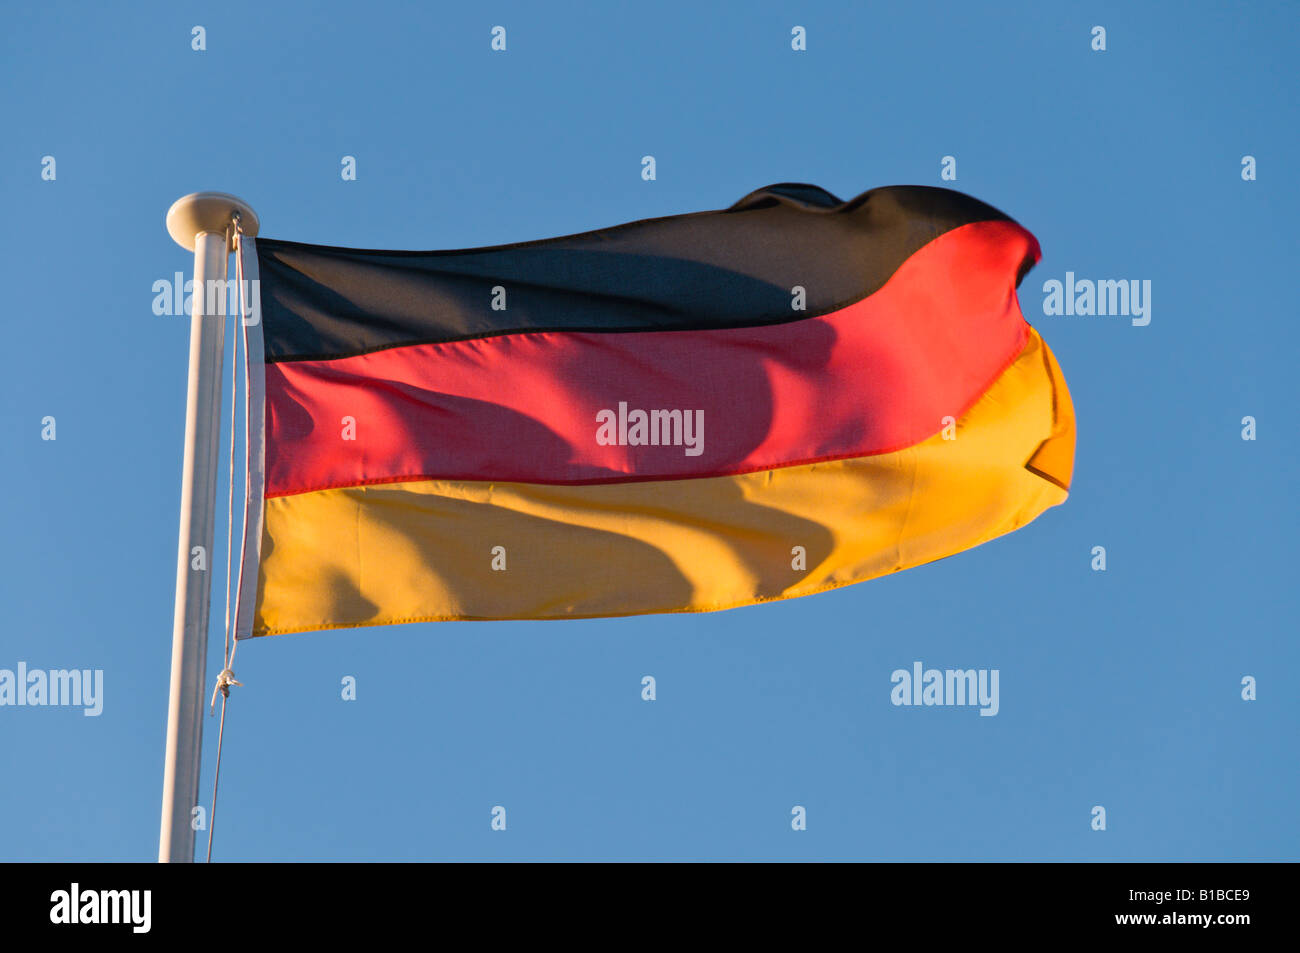 A German Flag Blowing In the Wind On A Blue Sky Background - Stock Image